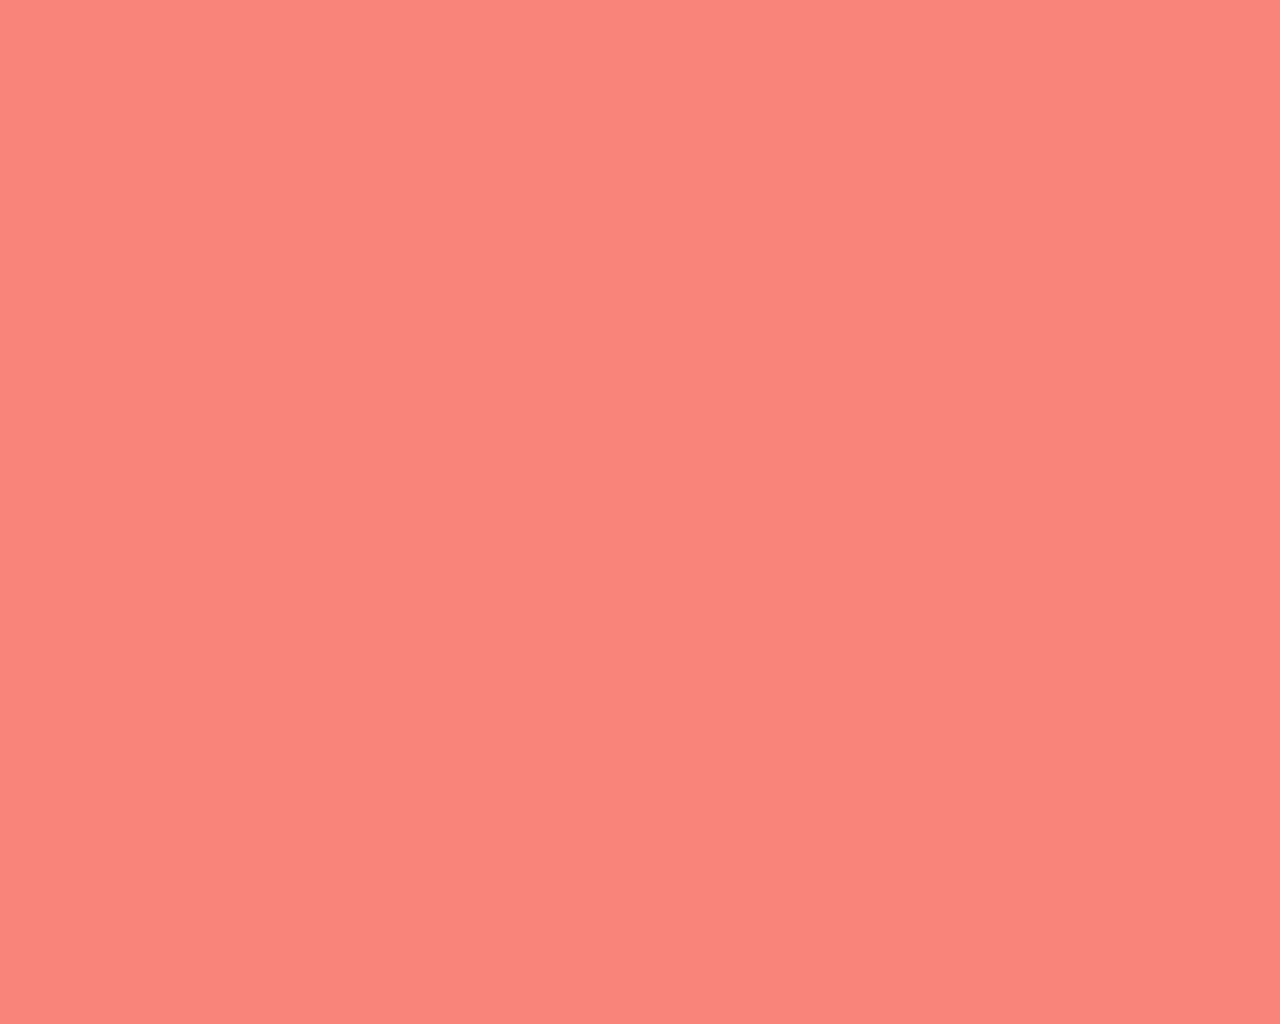 1280x1024 Congo Pink Solid Color Background